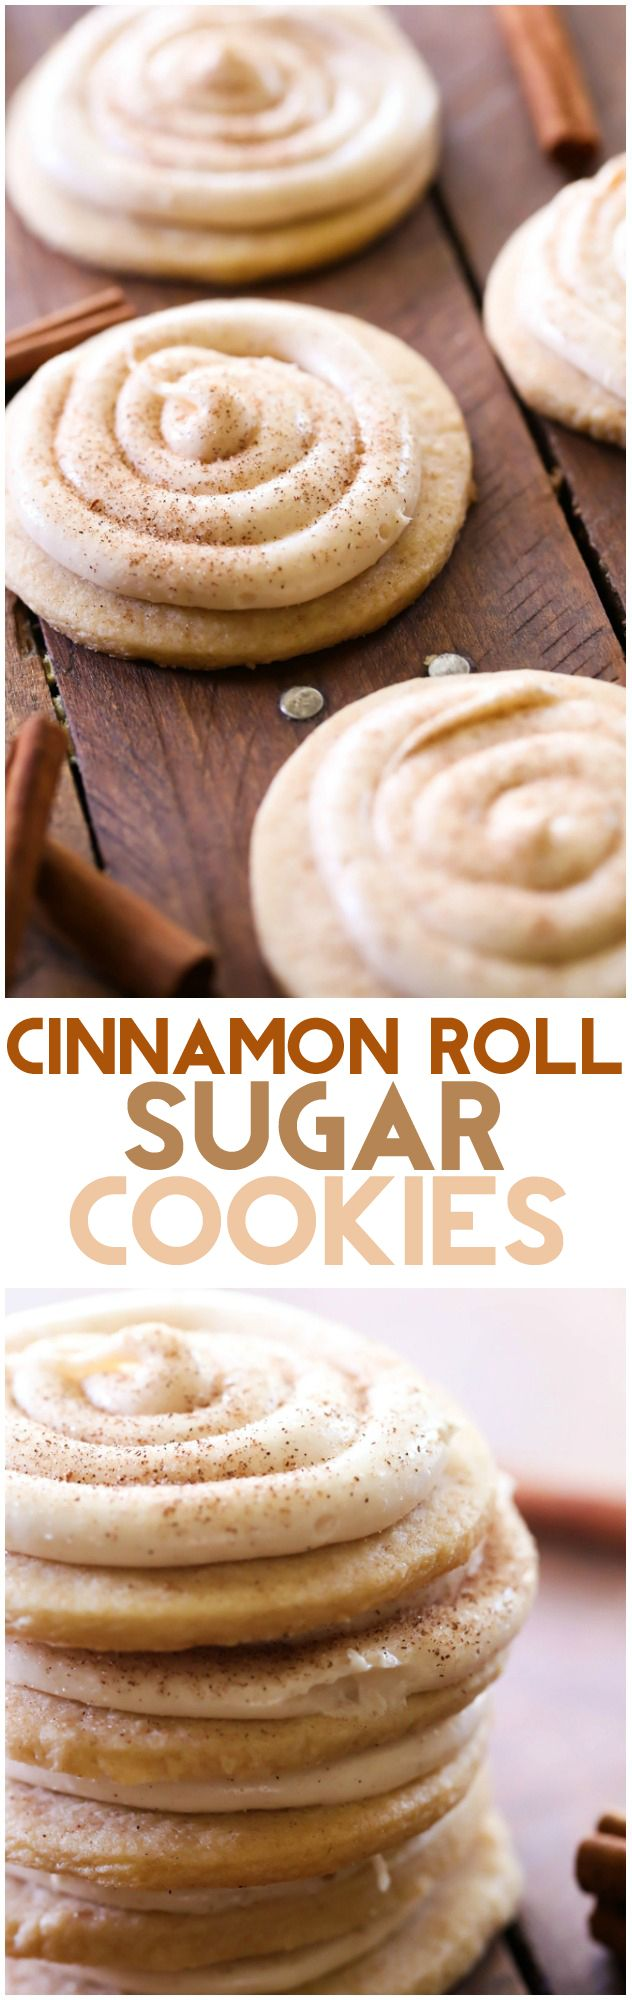 1 cup butter, softened 1½ cup sugar 1 egg 1 teaspoon vanilla 3 cups flour 1 teaspoon baking powder ½ teaspoon salt ½ teaspoon cinnamon Cinnamon Roll Frosting 16 ounces cream cheese 4 cups powdered ¼ teaspoon salt ¼ teaspoon cinnamon ½ vanilla